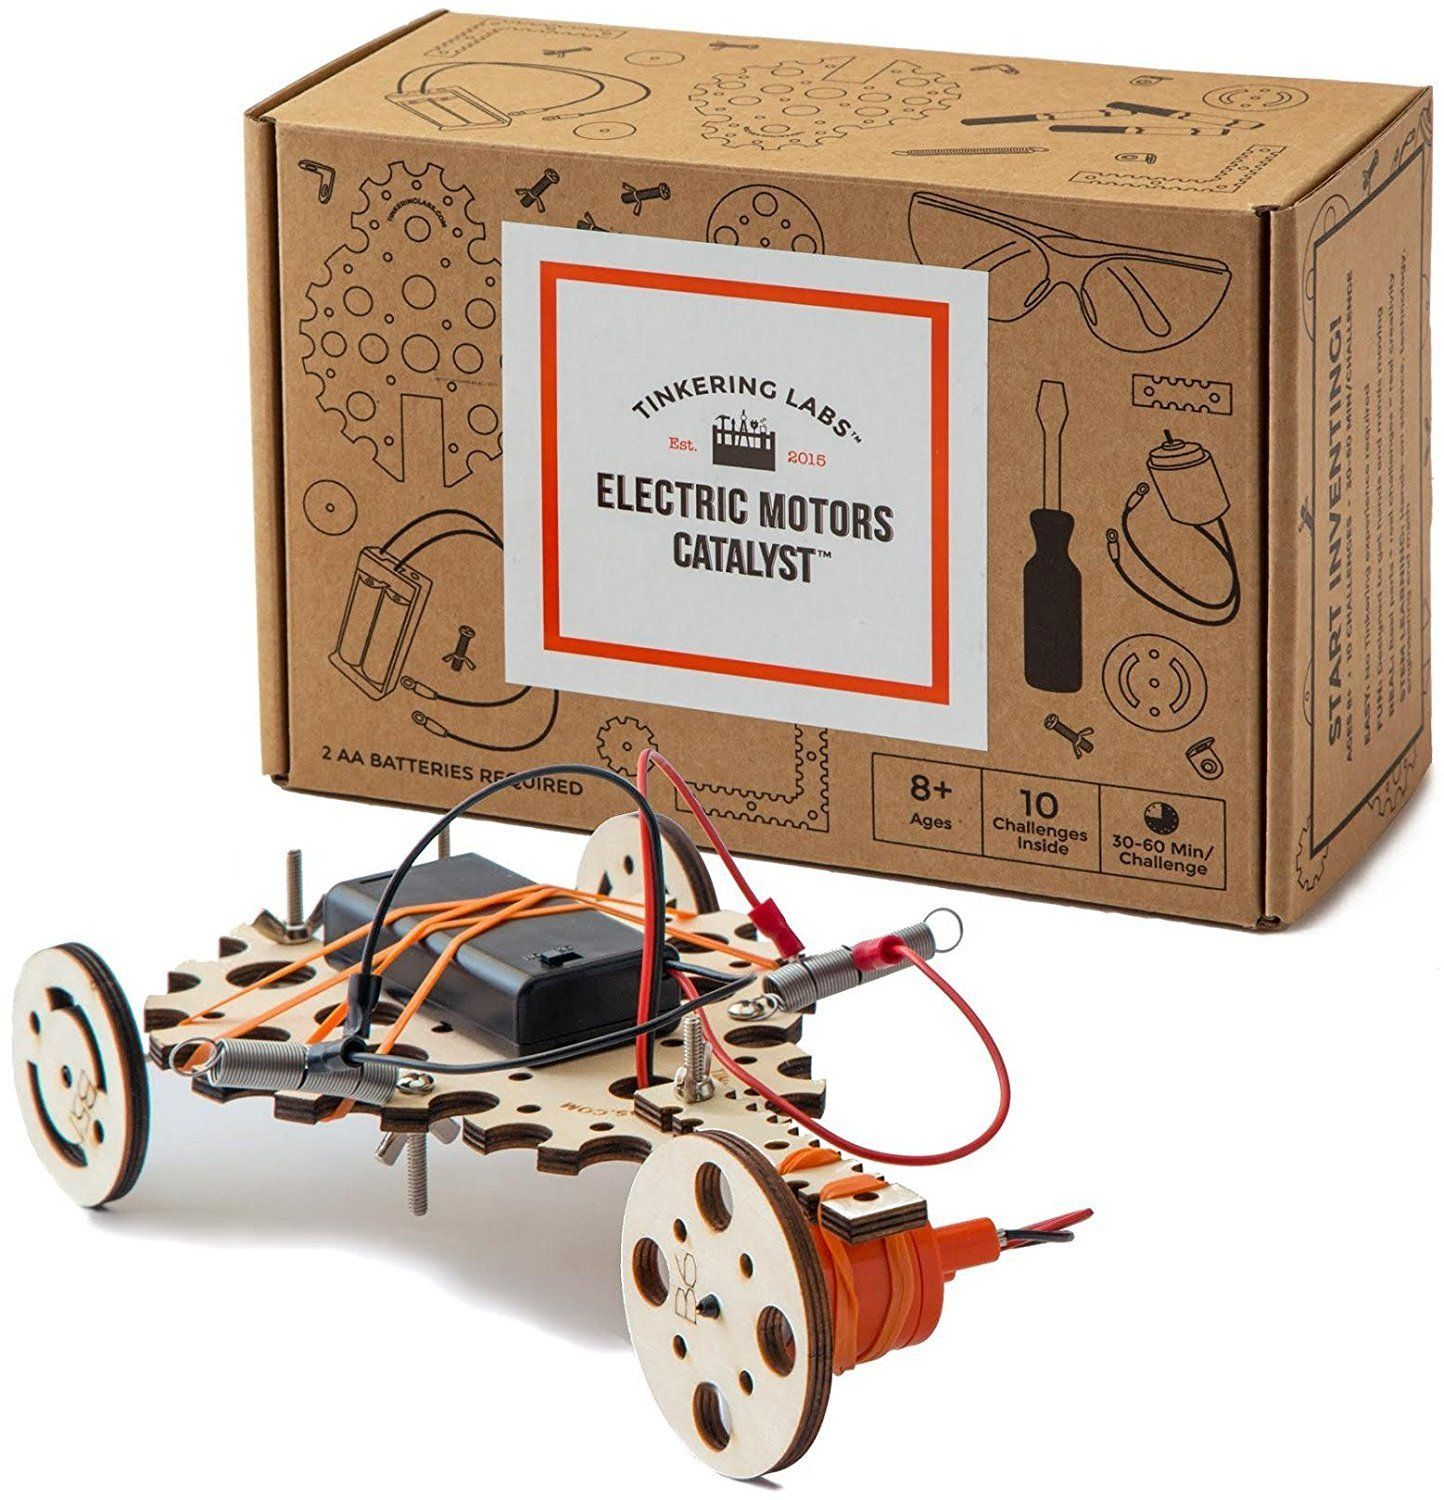 "The possibilities are endless with this <a href=""https://www.amazon.com/Tinkering-Labs-Electric-Motors-Catalyst/dp/B01M5GJFQ1"